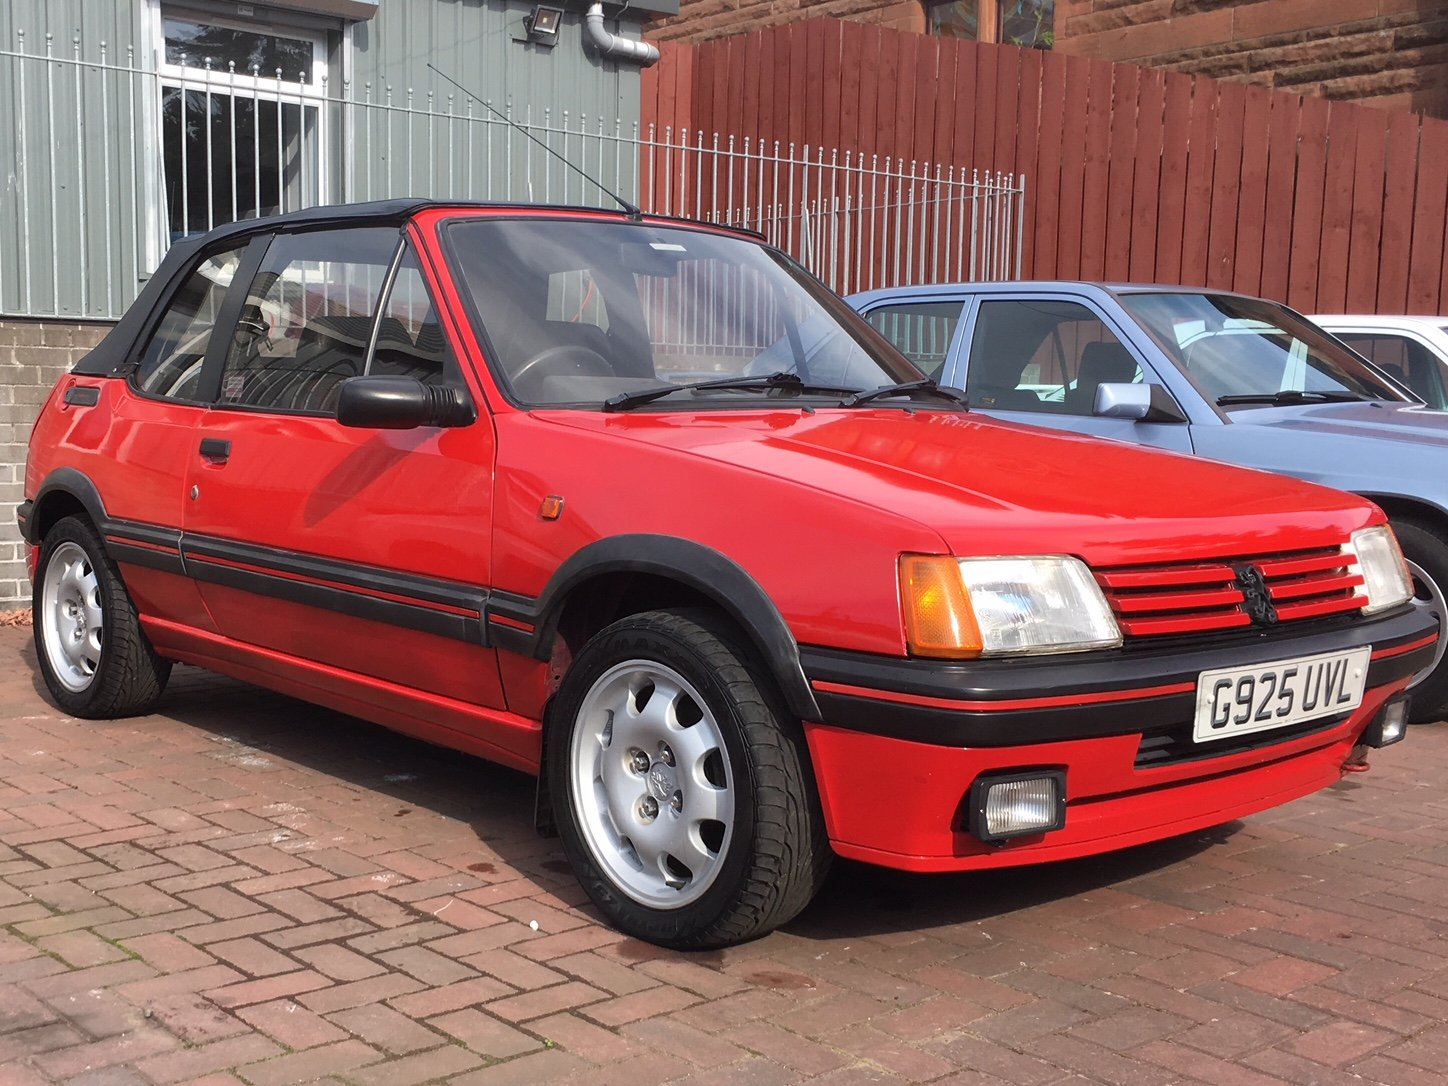 1990 peugeot 205 CTI 1.6 For Sale (picture 1 of 6)